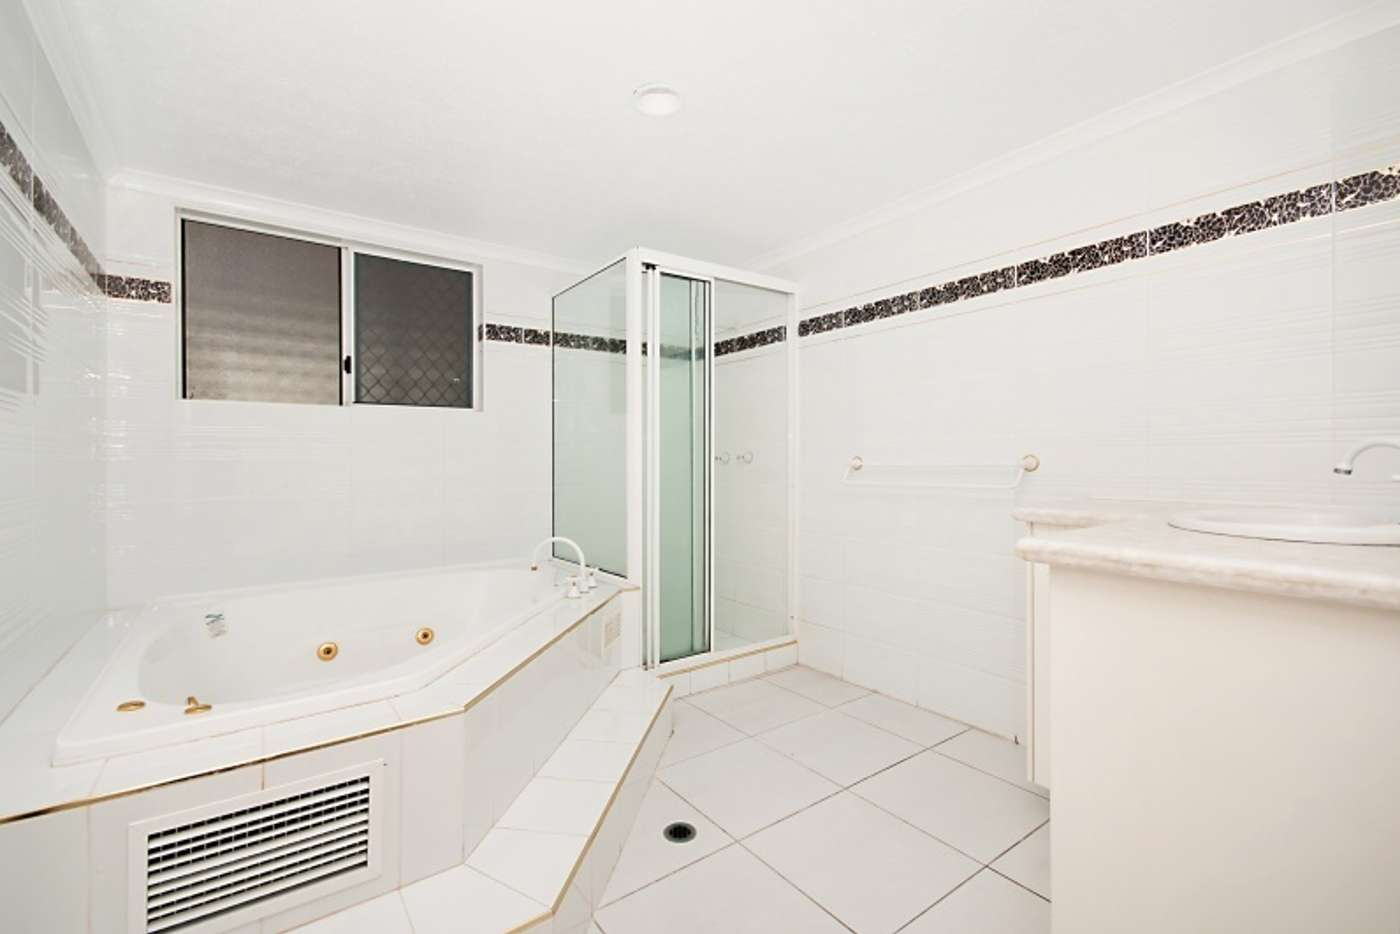 Seventh view of Homely apartment listing, 3/13 Hillside Crescent, Townsville City QLD 4810